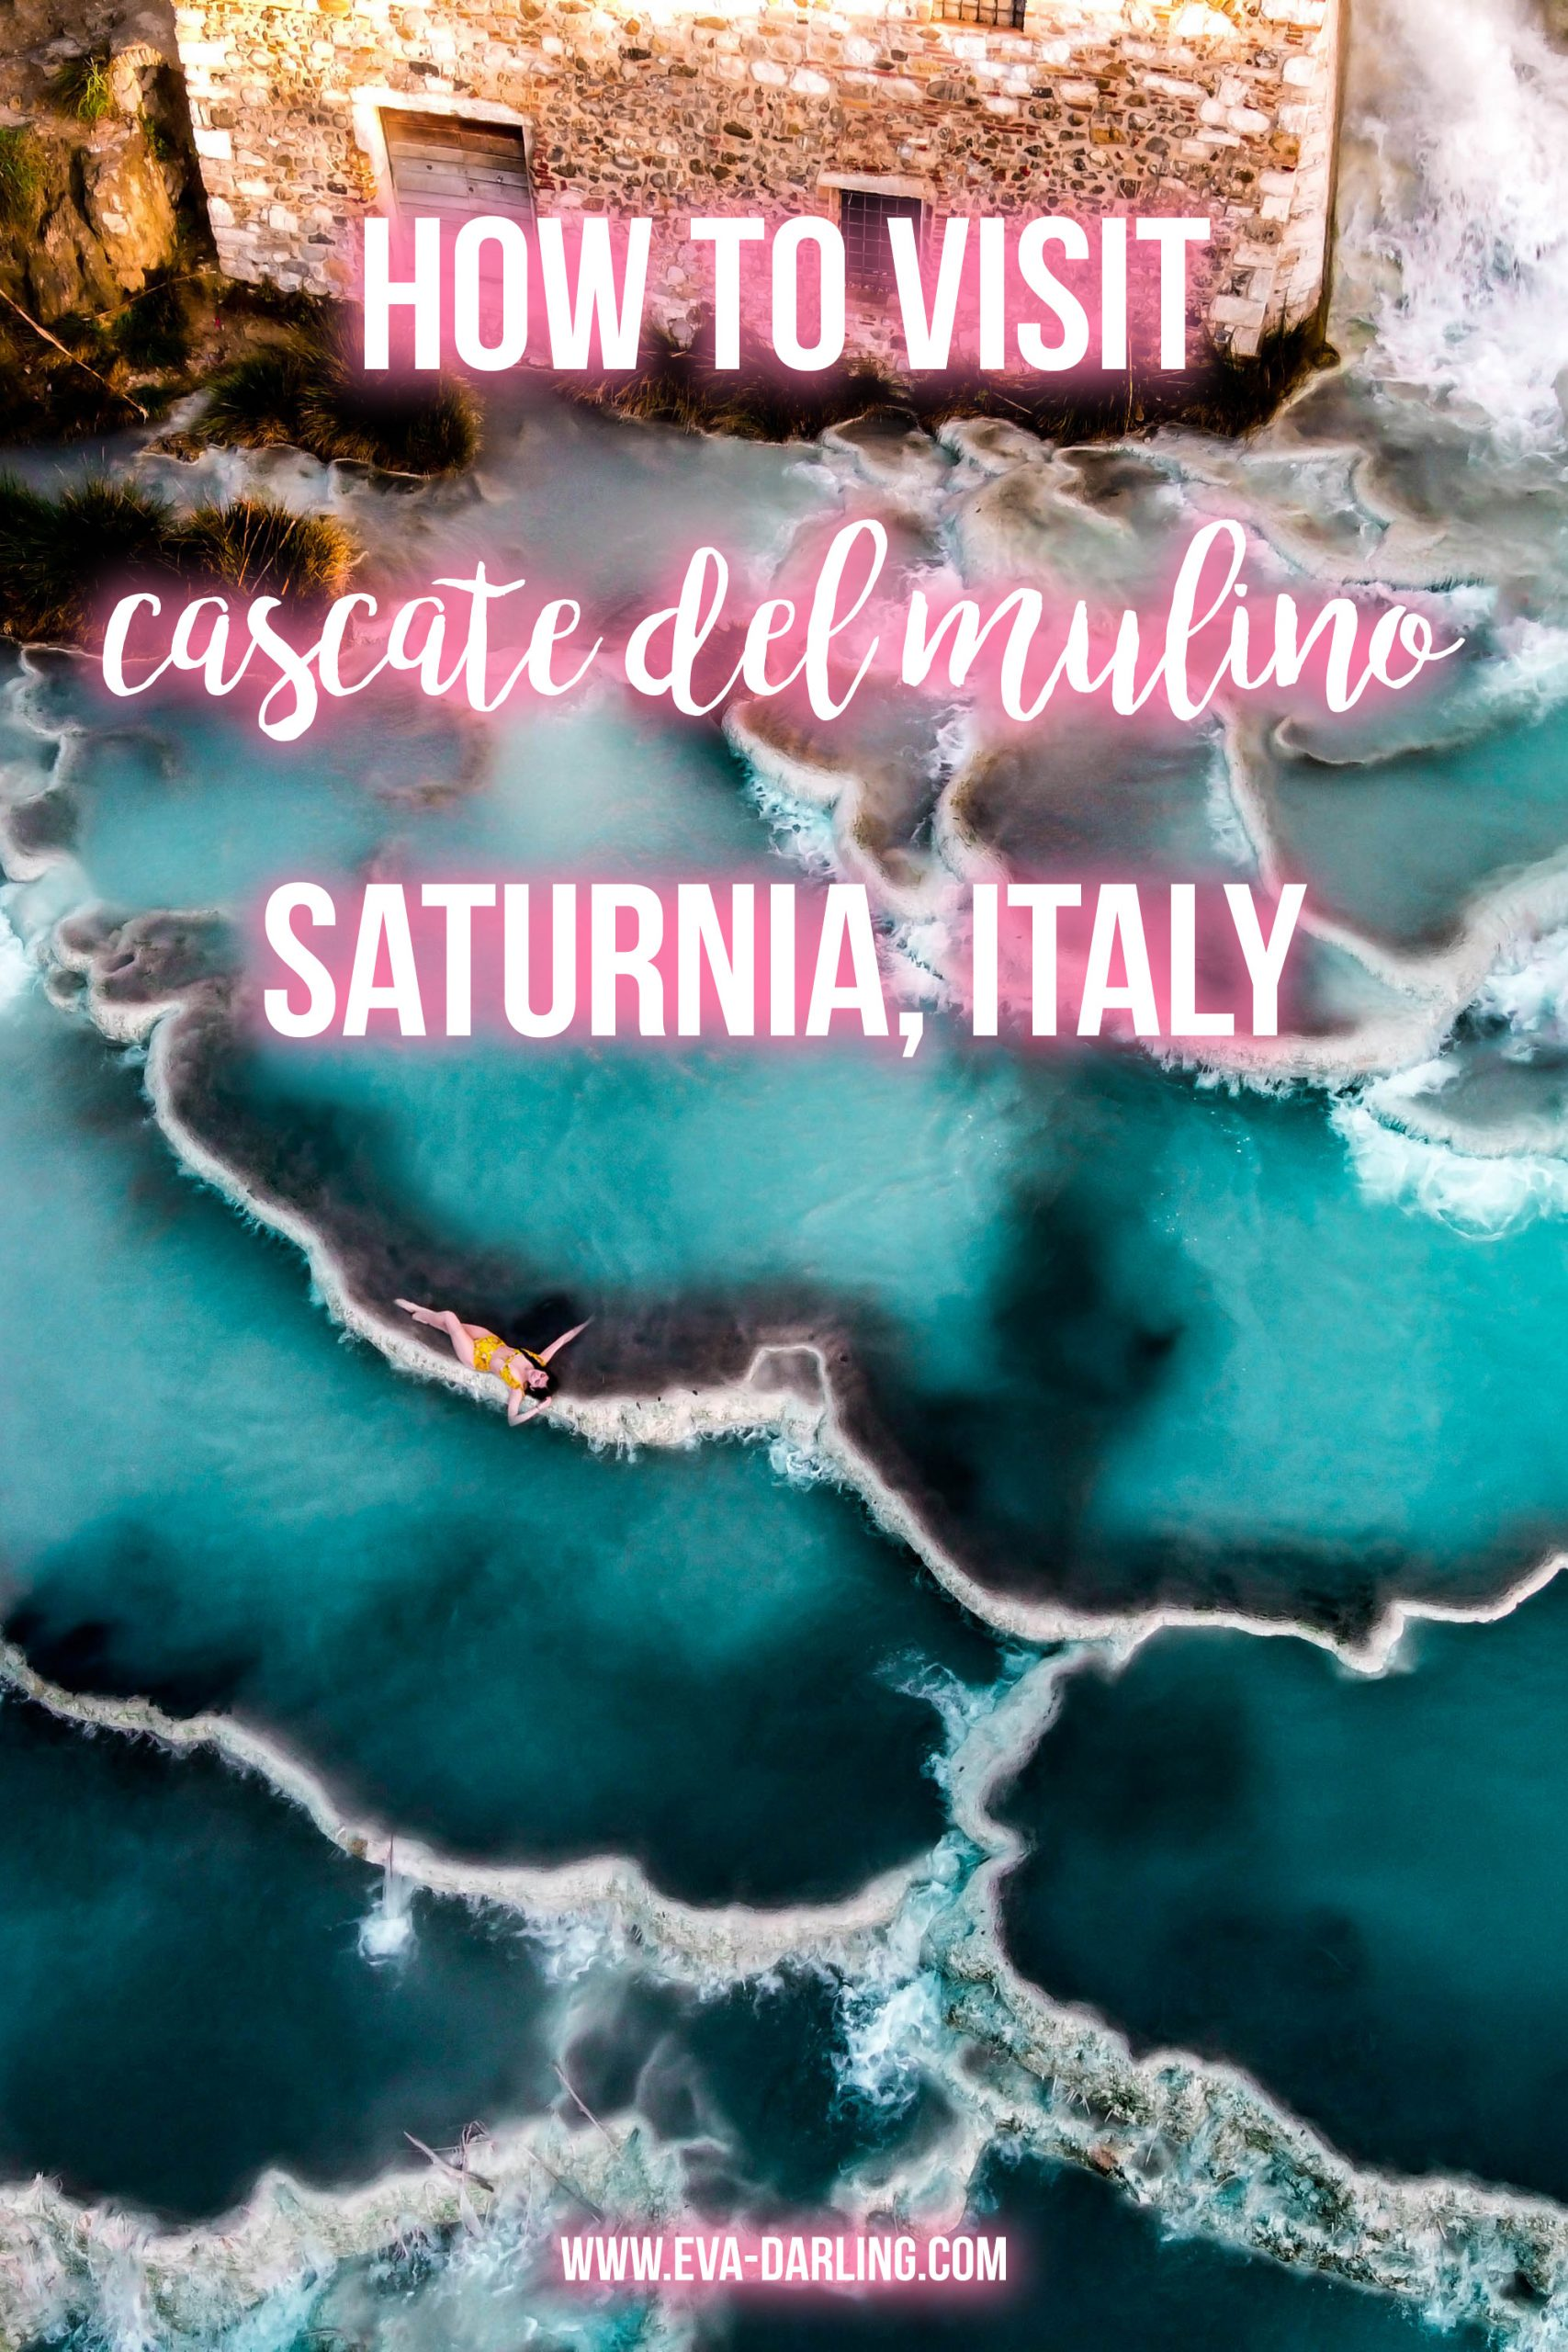 how to visit cascate del mulino instagrammable spot terme di saturnia italy instagram worthy natural hot springs thermal bath where to go in tuscany hidden gems province of grosseto solo female travel things to do travel guide europe eva phan eva darling manciano dji mavic mini drone aerial photography